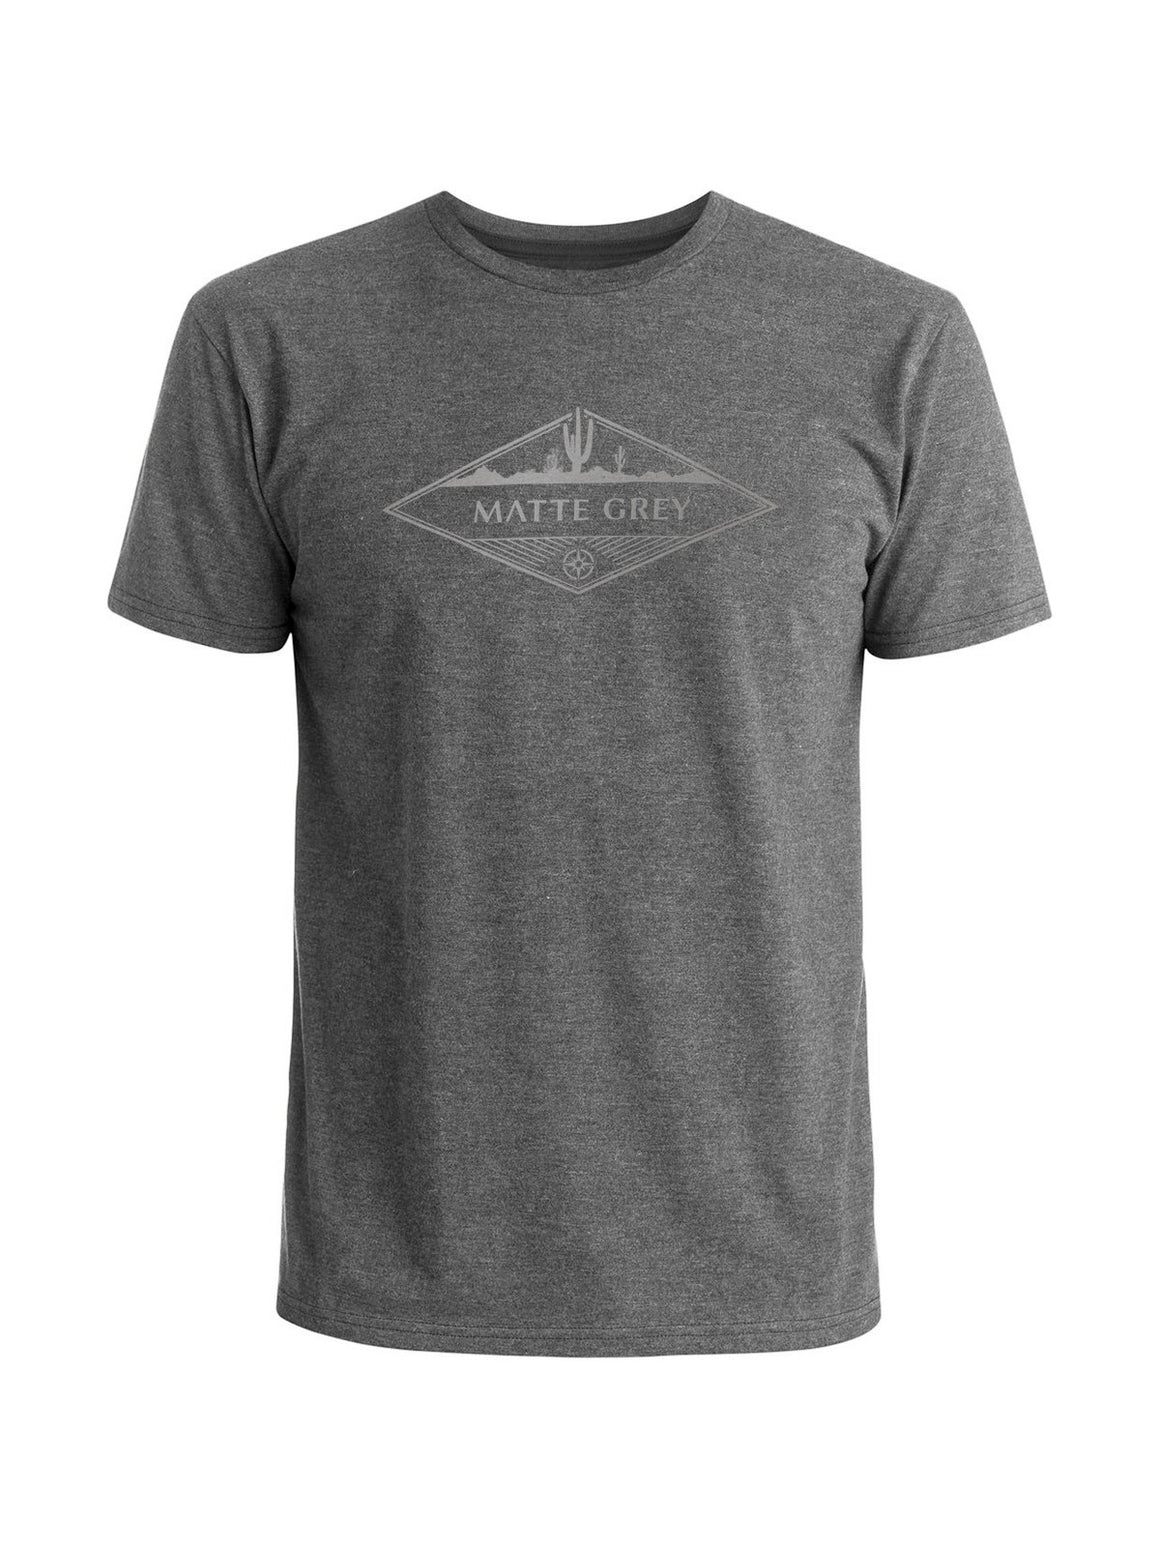 Wayfarer Tee Shirt - Medium Grey Hea (Light Grey)